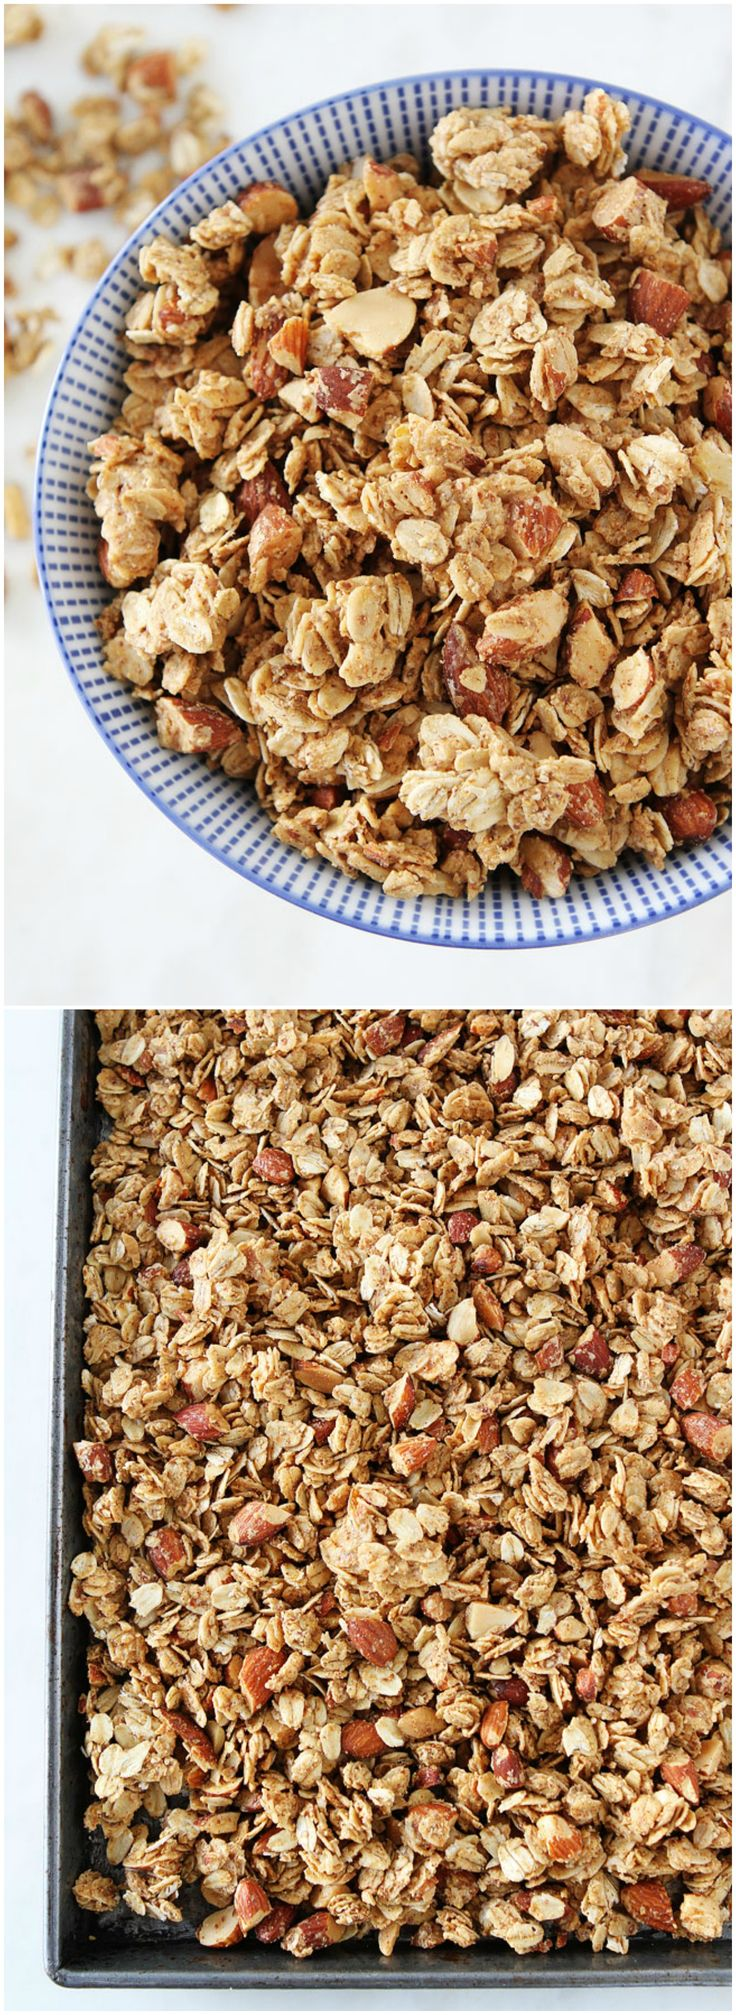 Almond Butter Granola Recipe on twopeasandtheirpod.com The BEST homemade granola recipe and it's so easy to make!